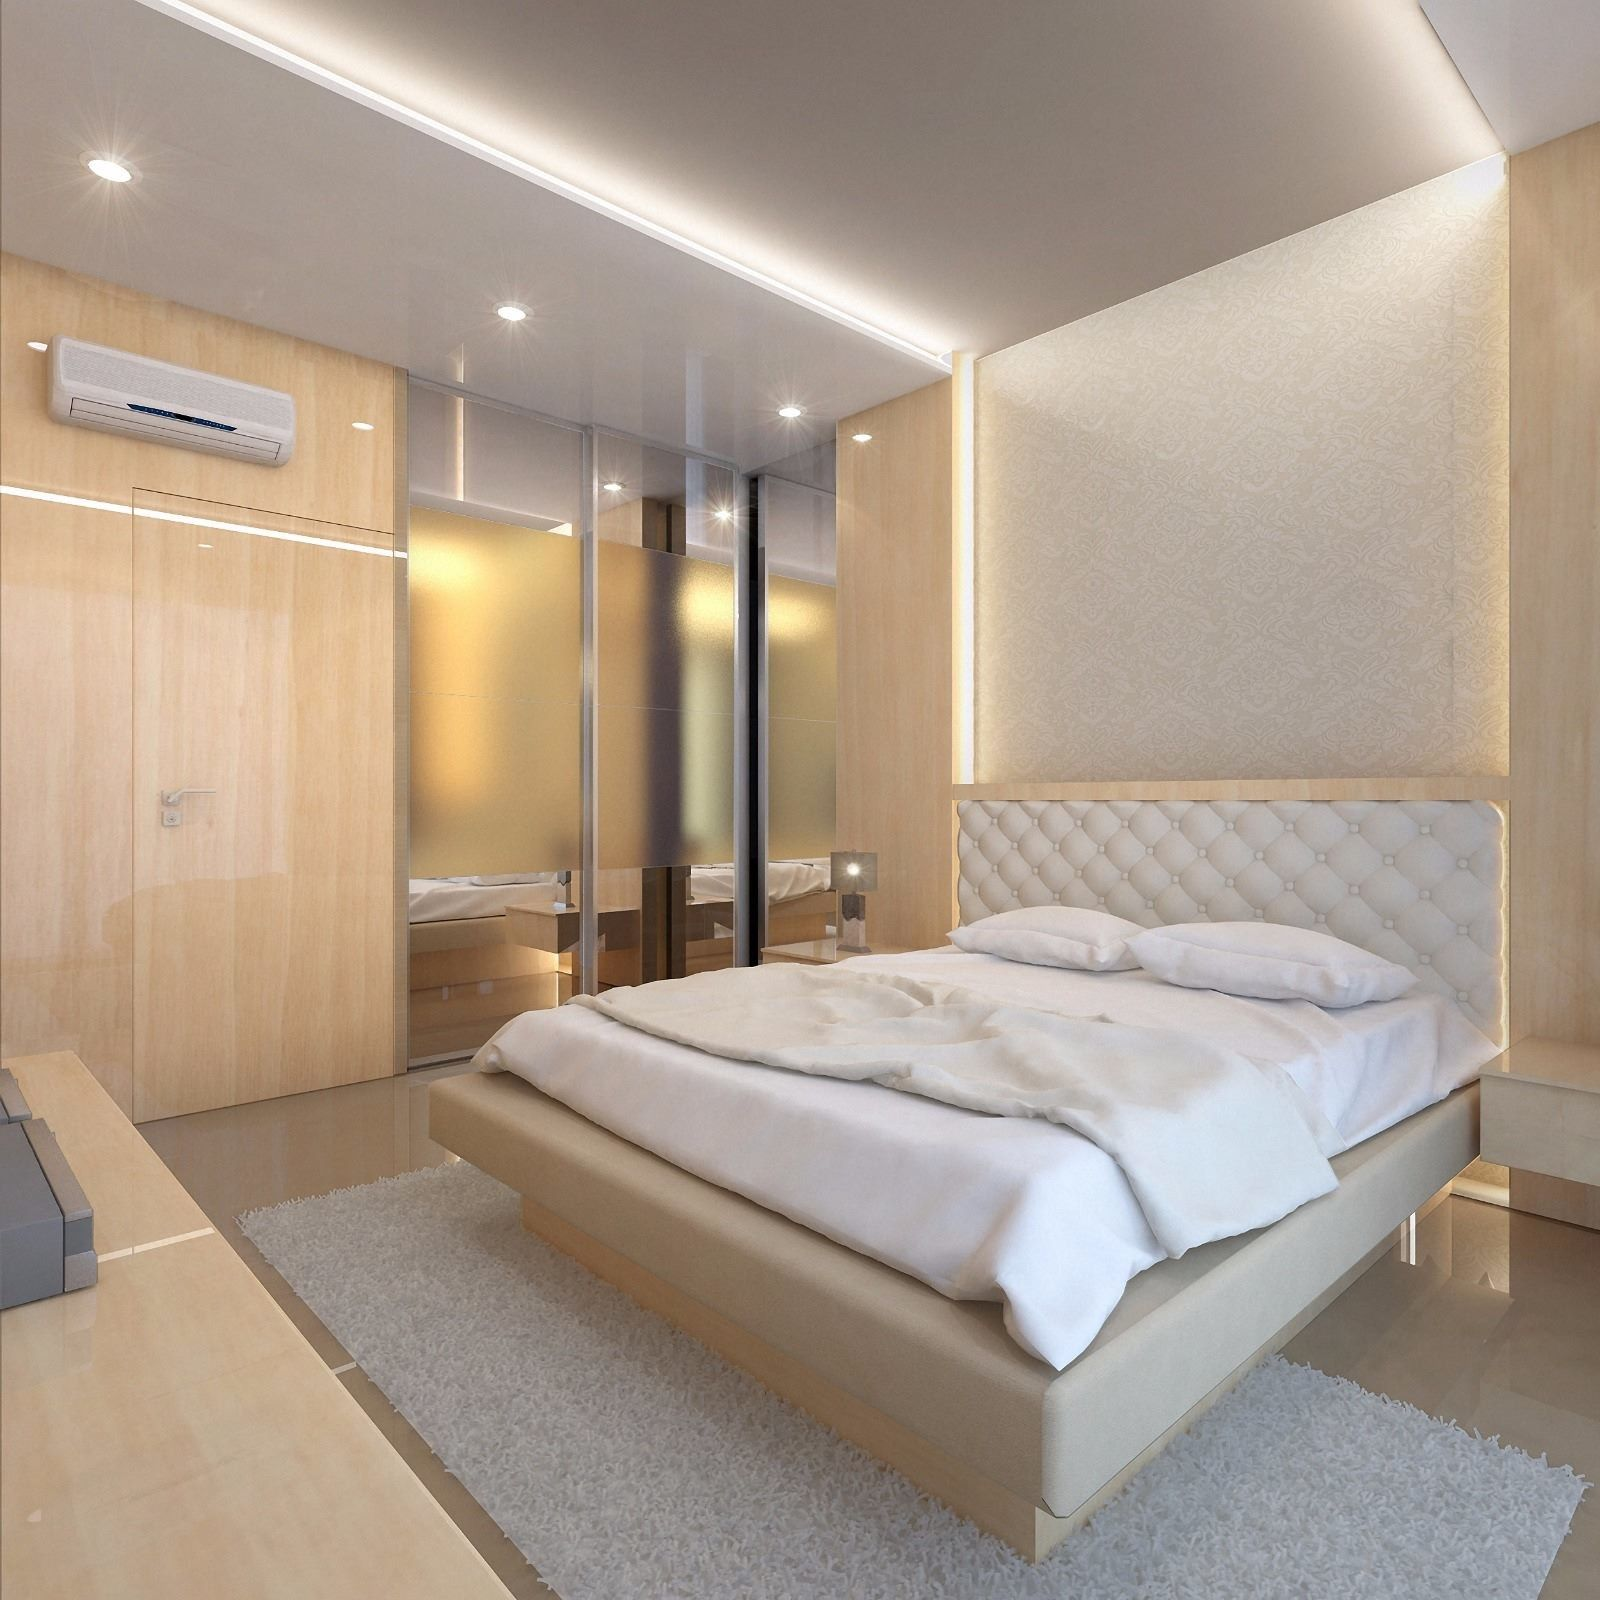 Best The Bright Bed Room With Creme Color Appearance Light 400 x 300